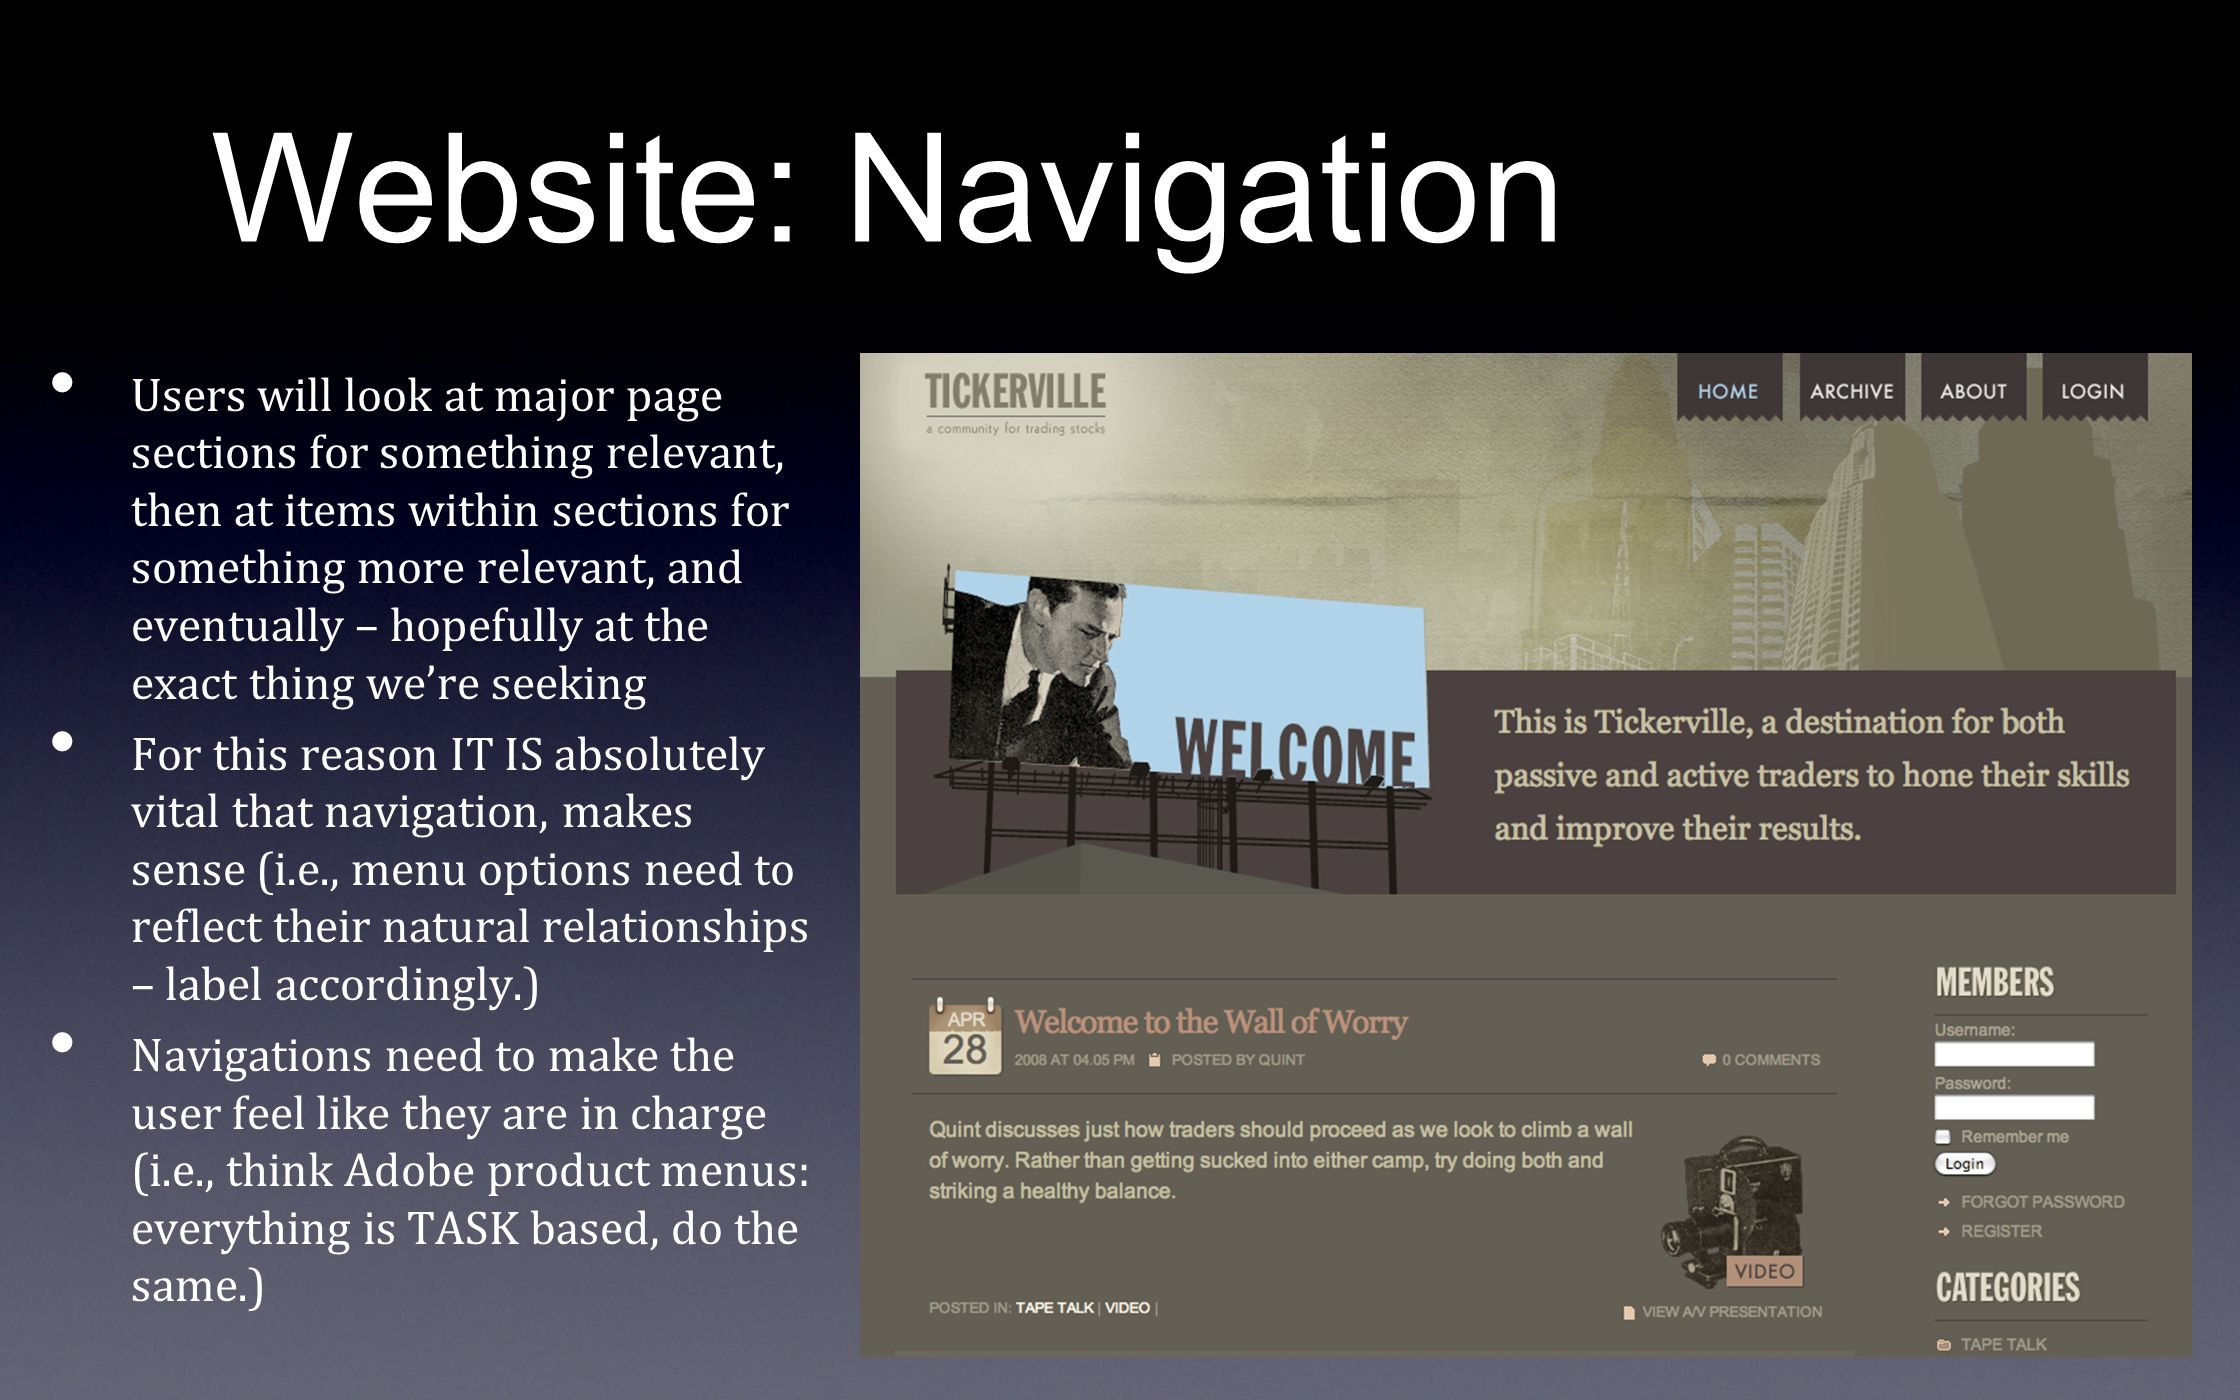 Website: Navigation Users will look at major page sections for something relevant, then at items within sections for something more relevant, and even